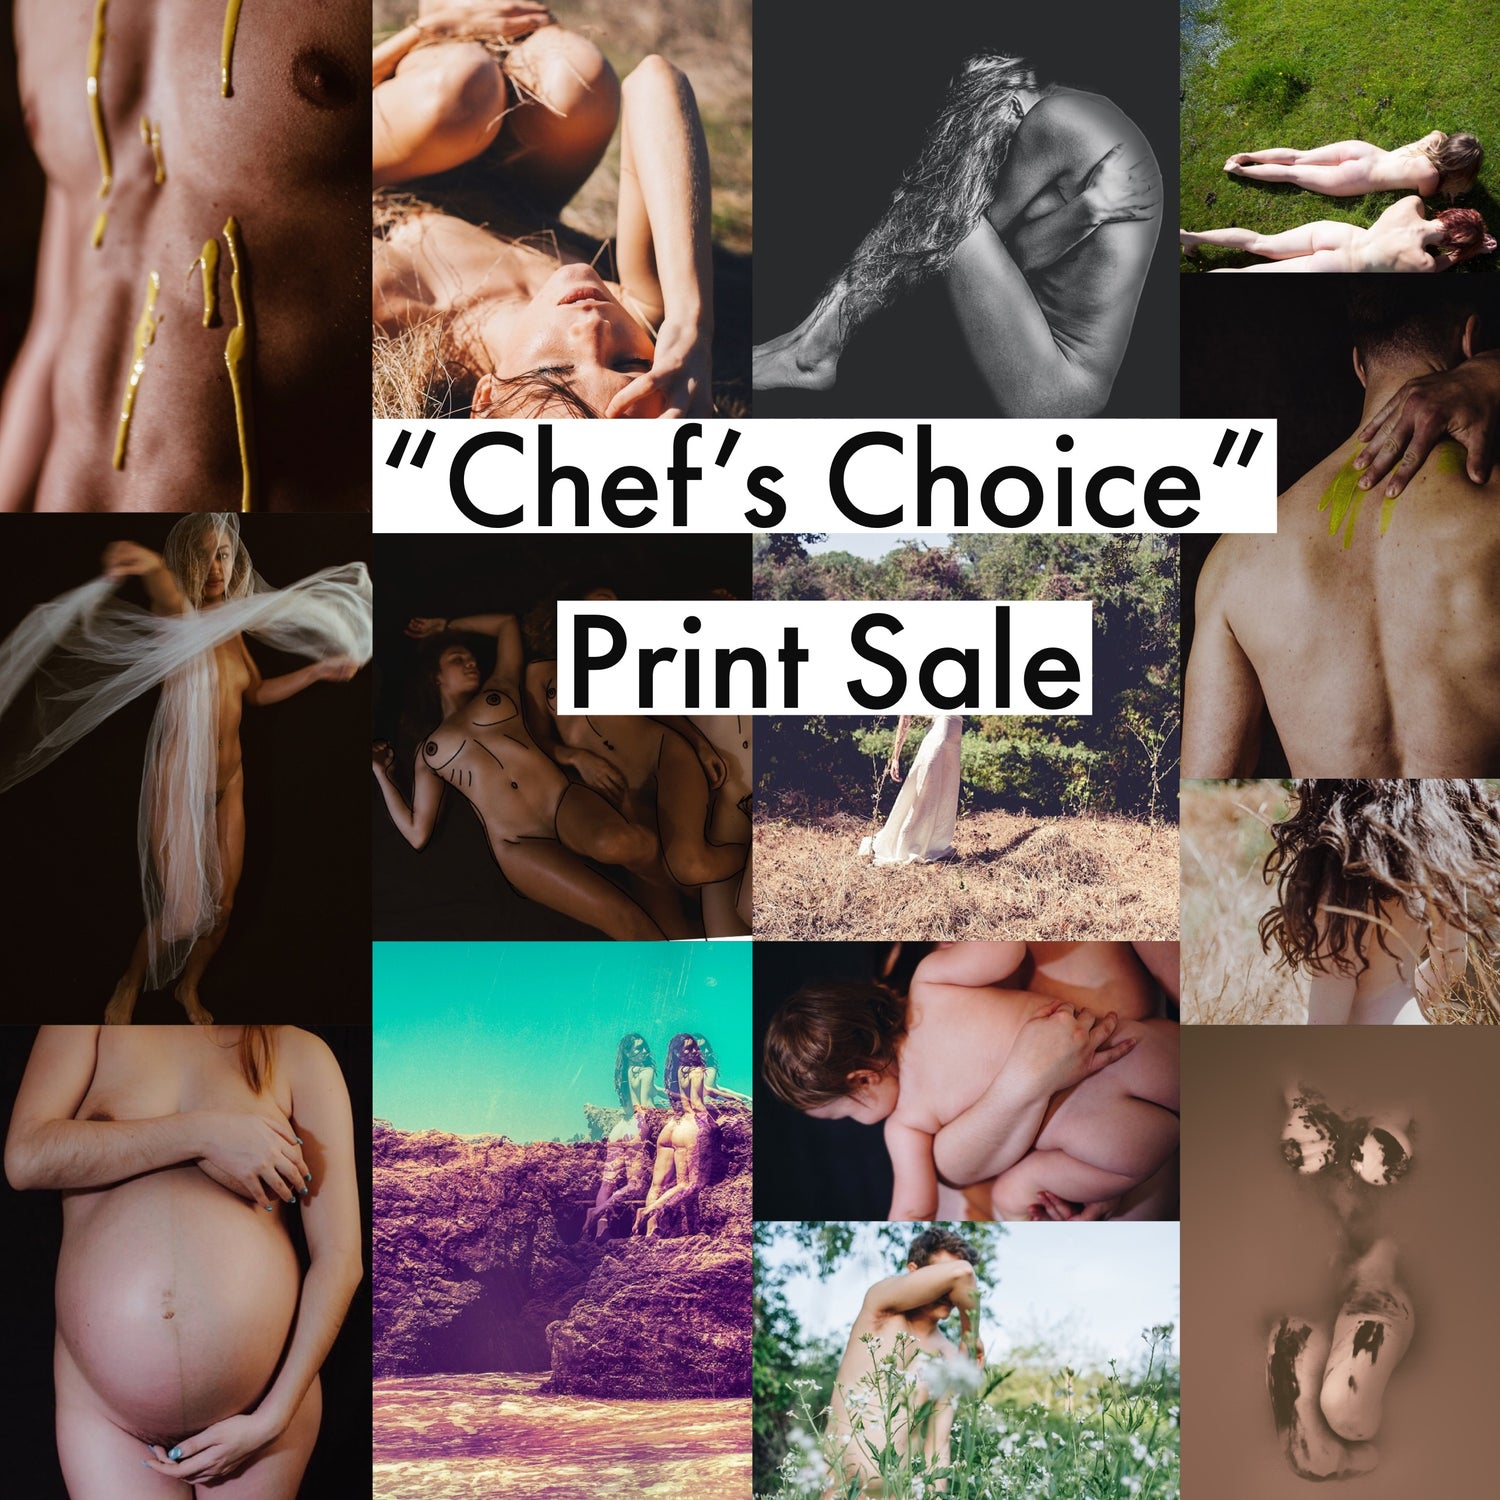 Image of Chef's Choice Print Sale